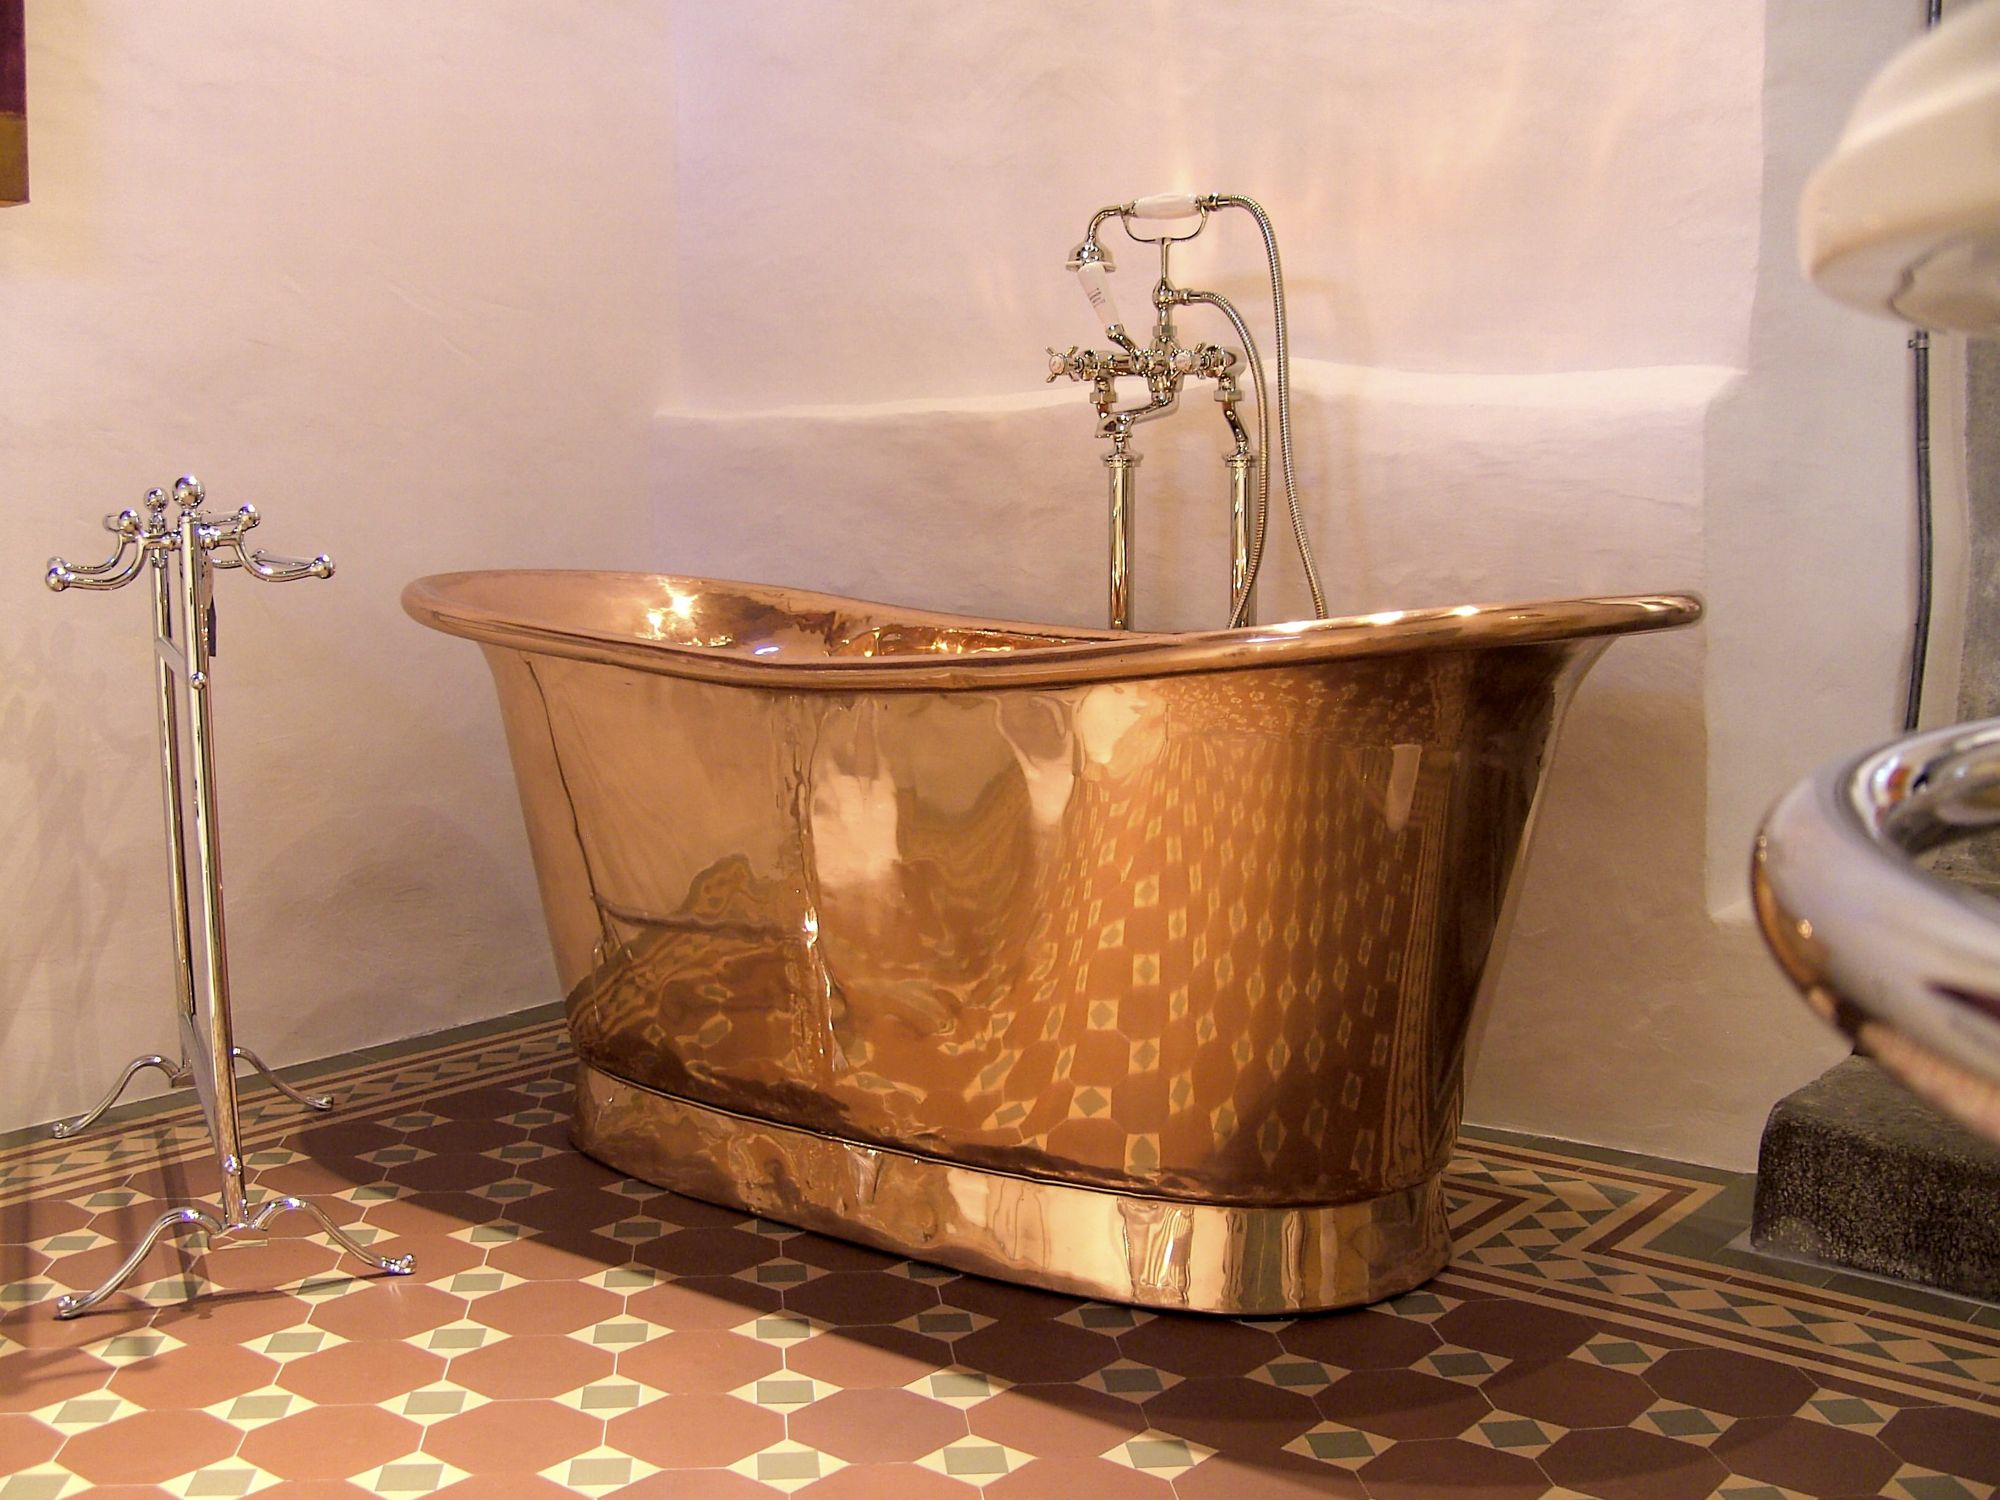 Kupfer & Messing Archives – TRADITIONAL BATHROOMS